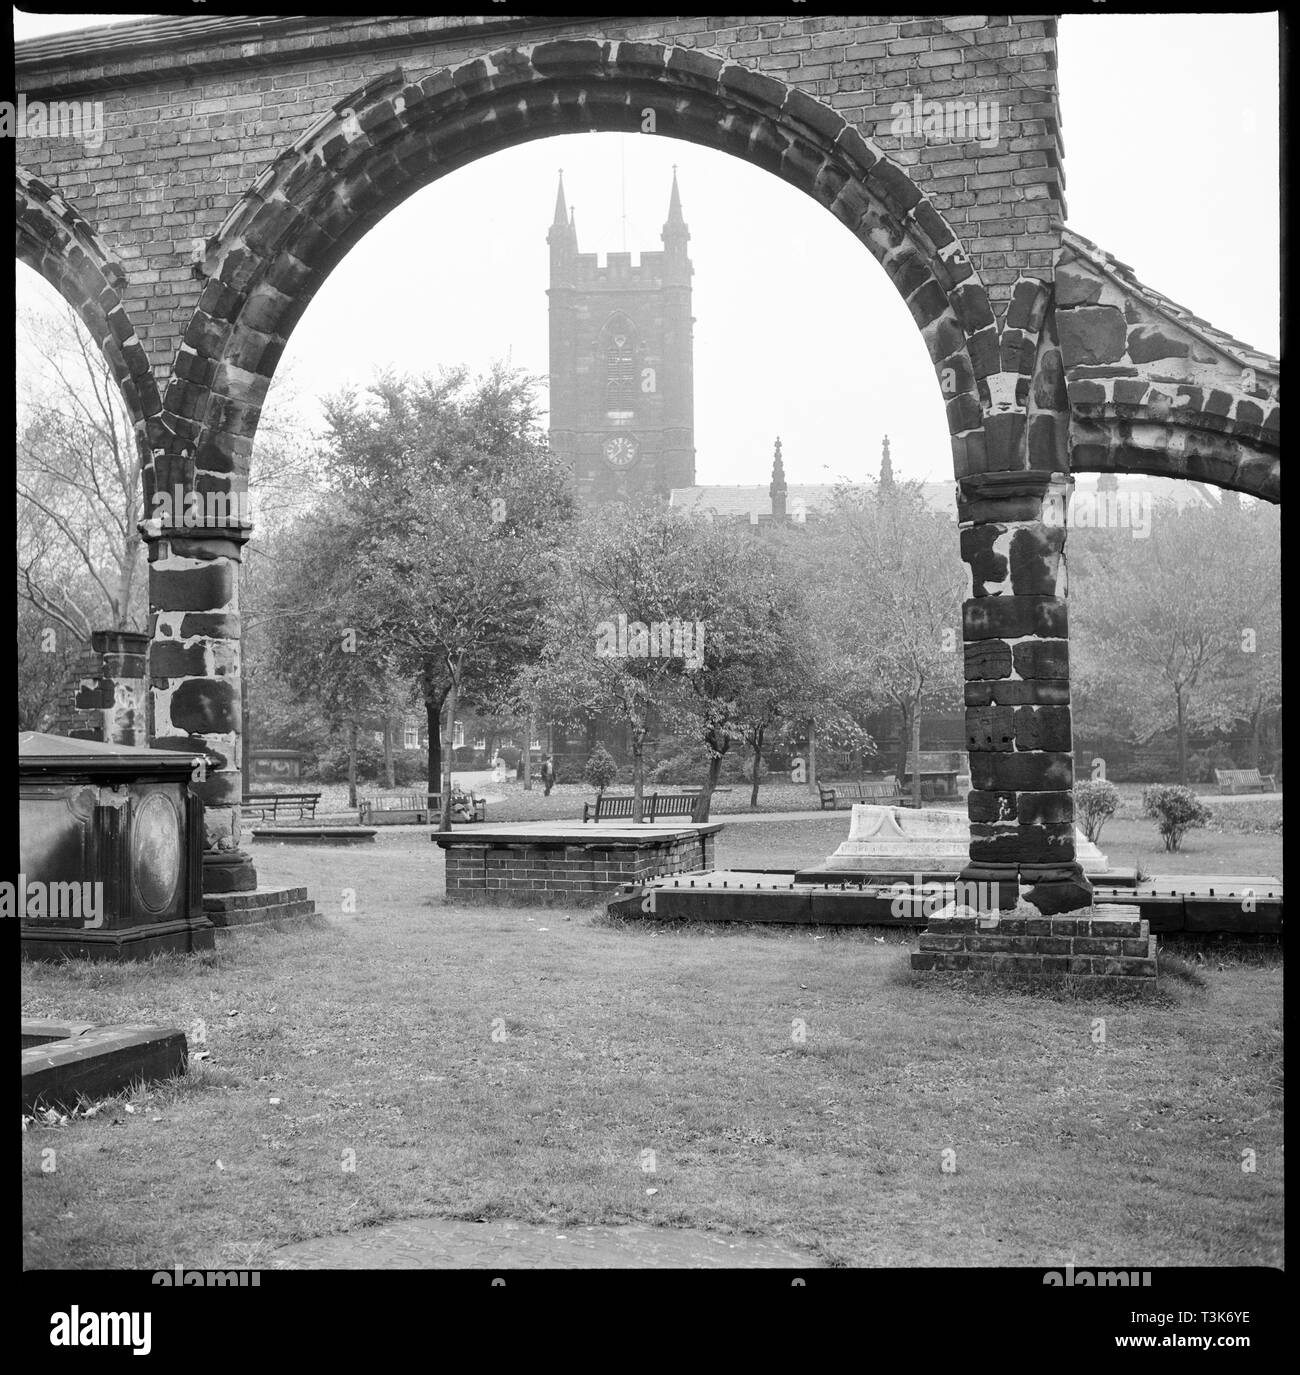 St Peter's Church, Glebe Street, Stoke-upon-Trent, 1965-1968. View of the church seen through the re-erected stone arches of the former church. St Peter's, also known as Stoke Minster, is the historic and civic church for the City of Stoke-on-Trent. By the 1820s the existing medieval church had become too small for the growing congregation and in 1830 the new Church of St Peter ad Vincula was consecrated. In the late 19th century some of the stones from the former church were reconstructed to represent the south arcade of the nave. - Stock Image